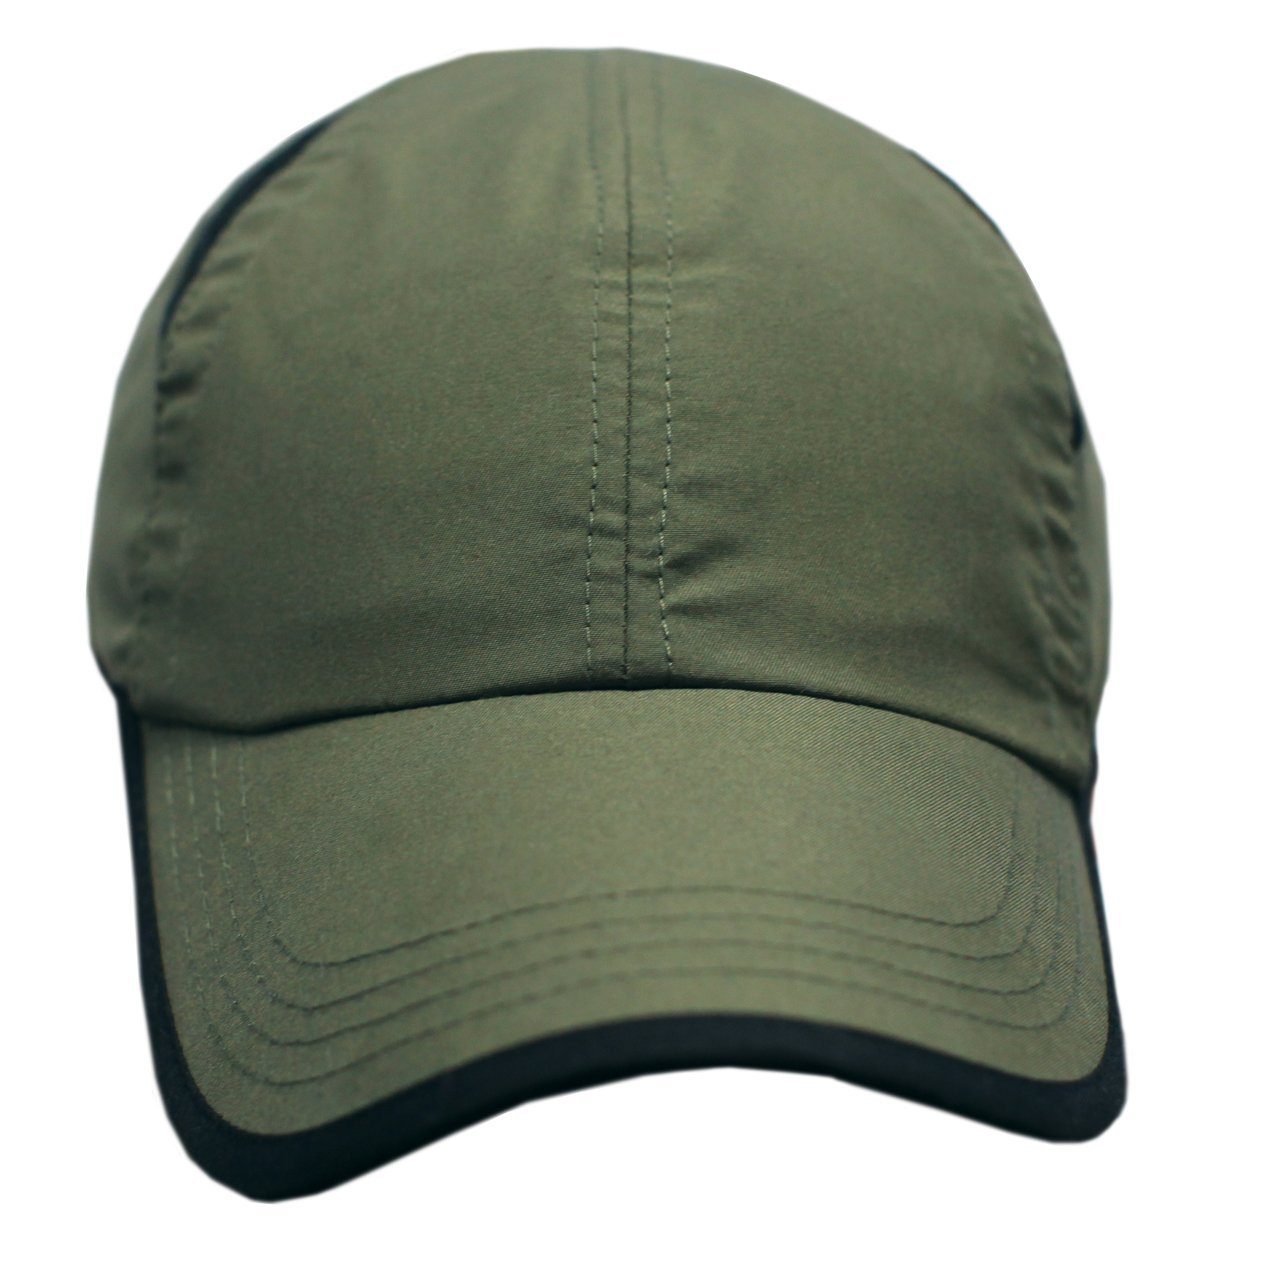 6975-OL Backcountry Hat - Olive